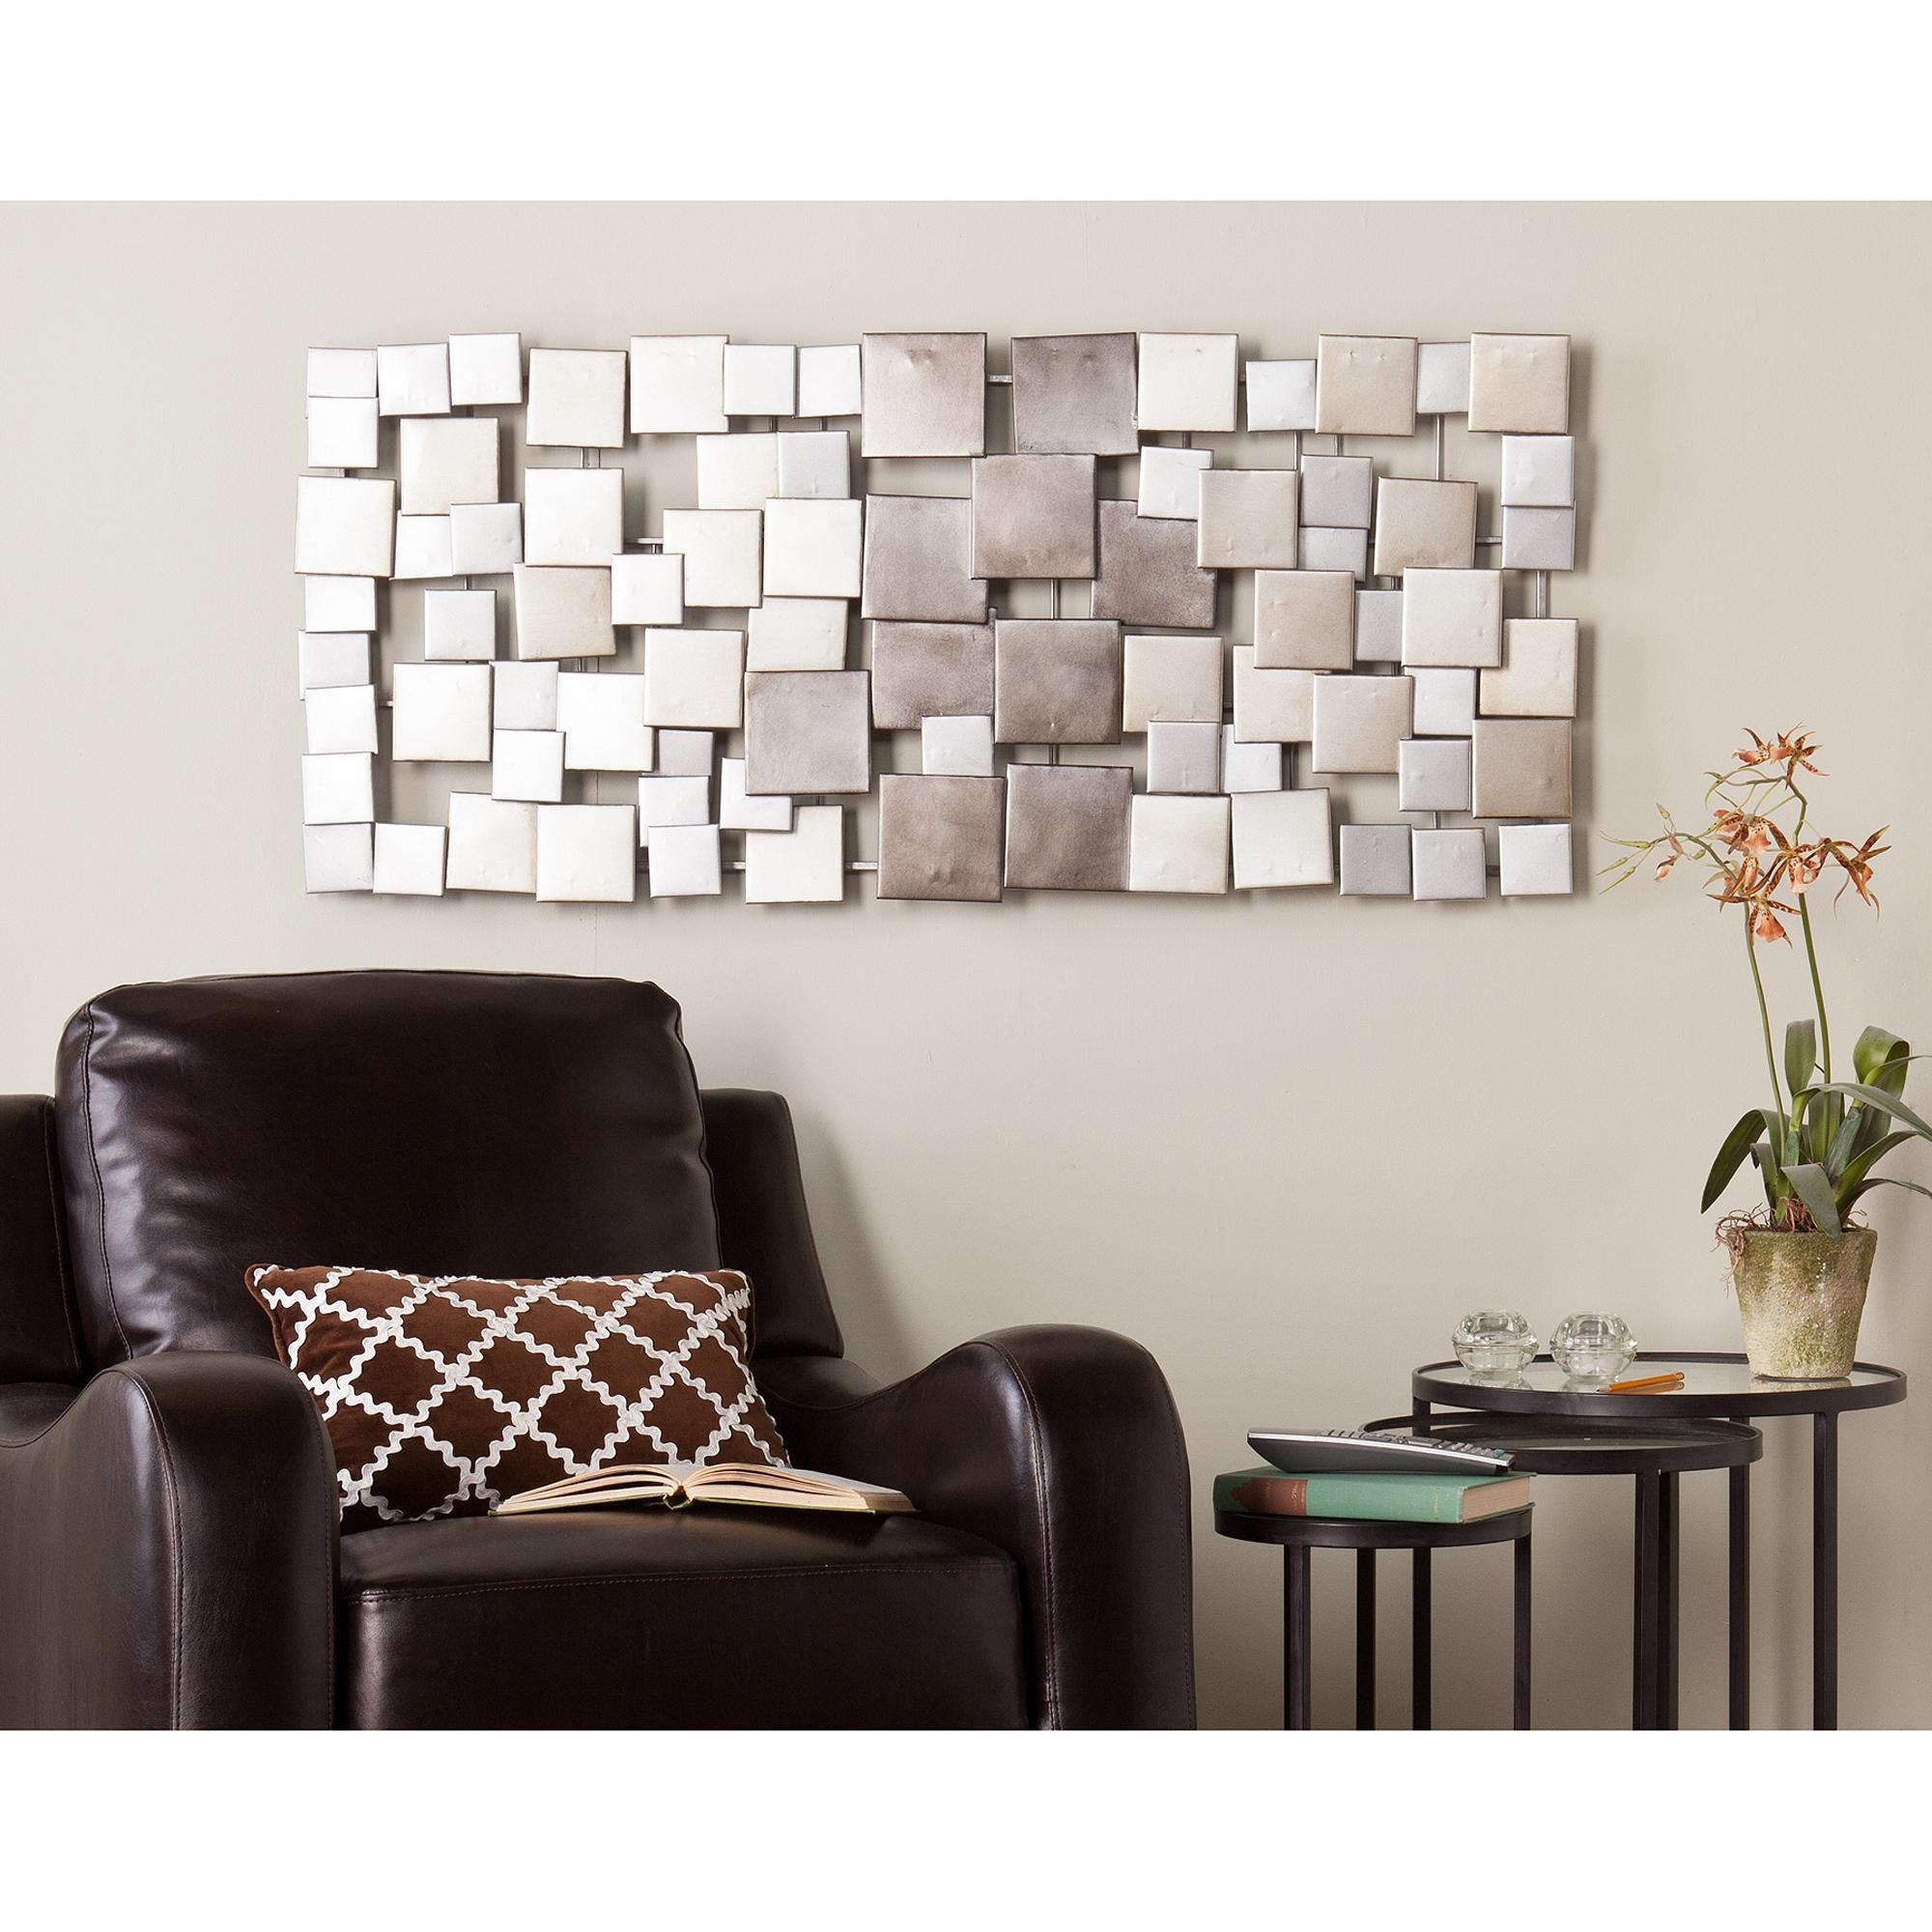 Metal Wall Art – Walmart With Decorative Metal Disc Wall Art (Image 11 of 18)